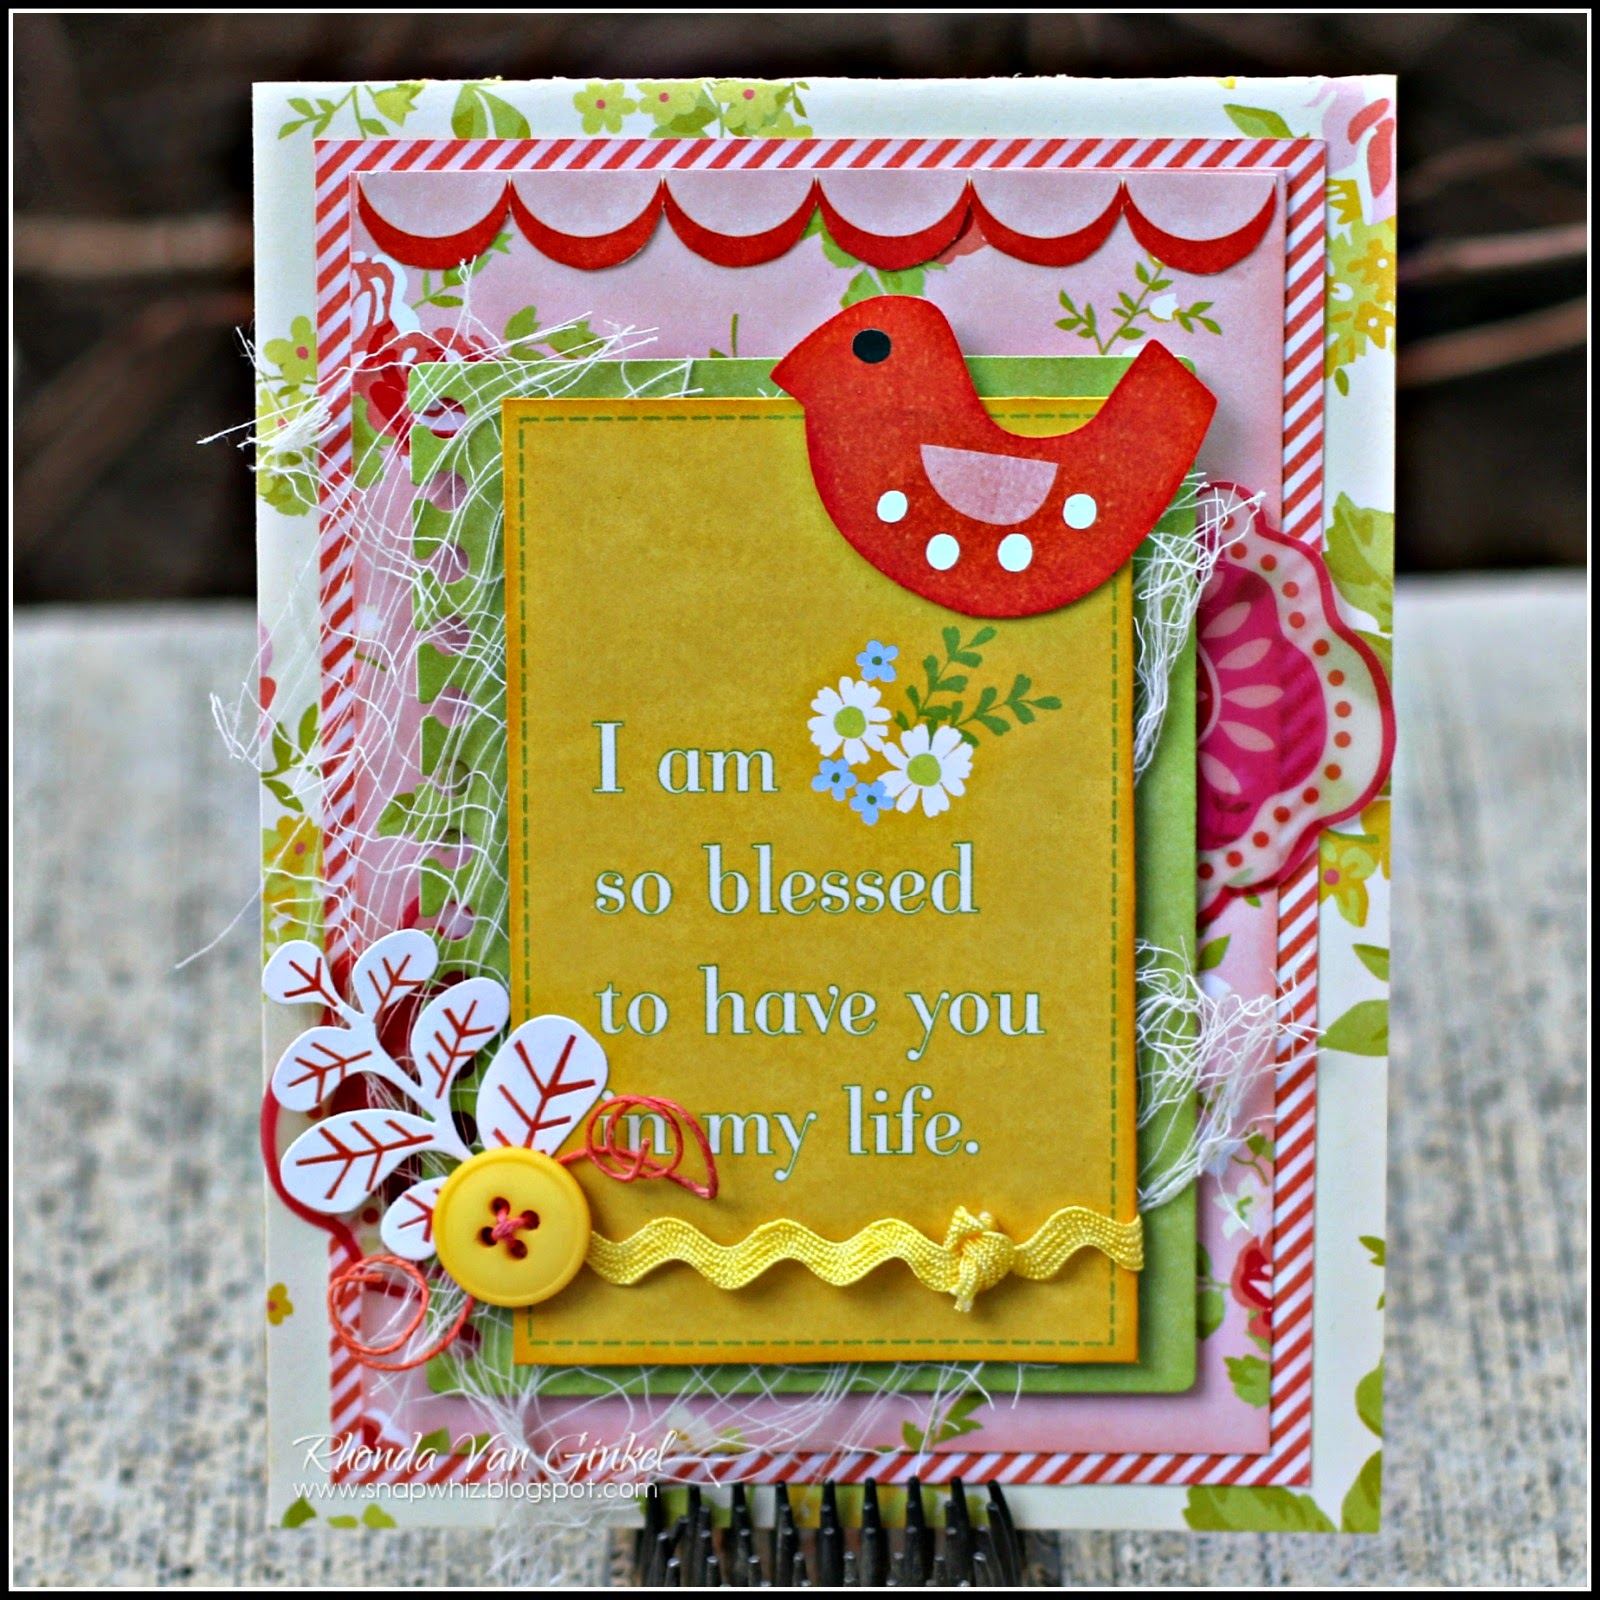 I am So Blessed card featuring SEI papers designed by Rhonda Van Ginkel as Guest Designer for SEI